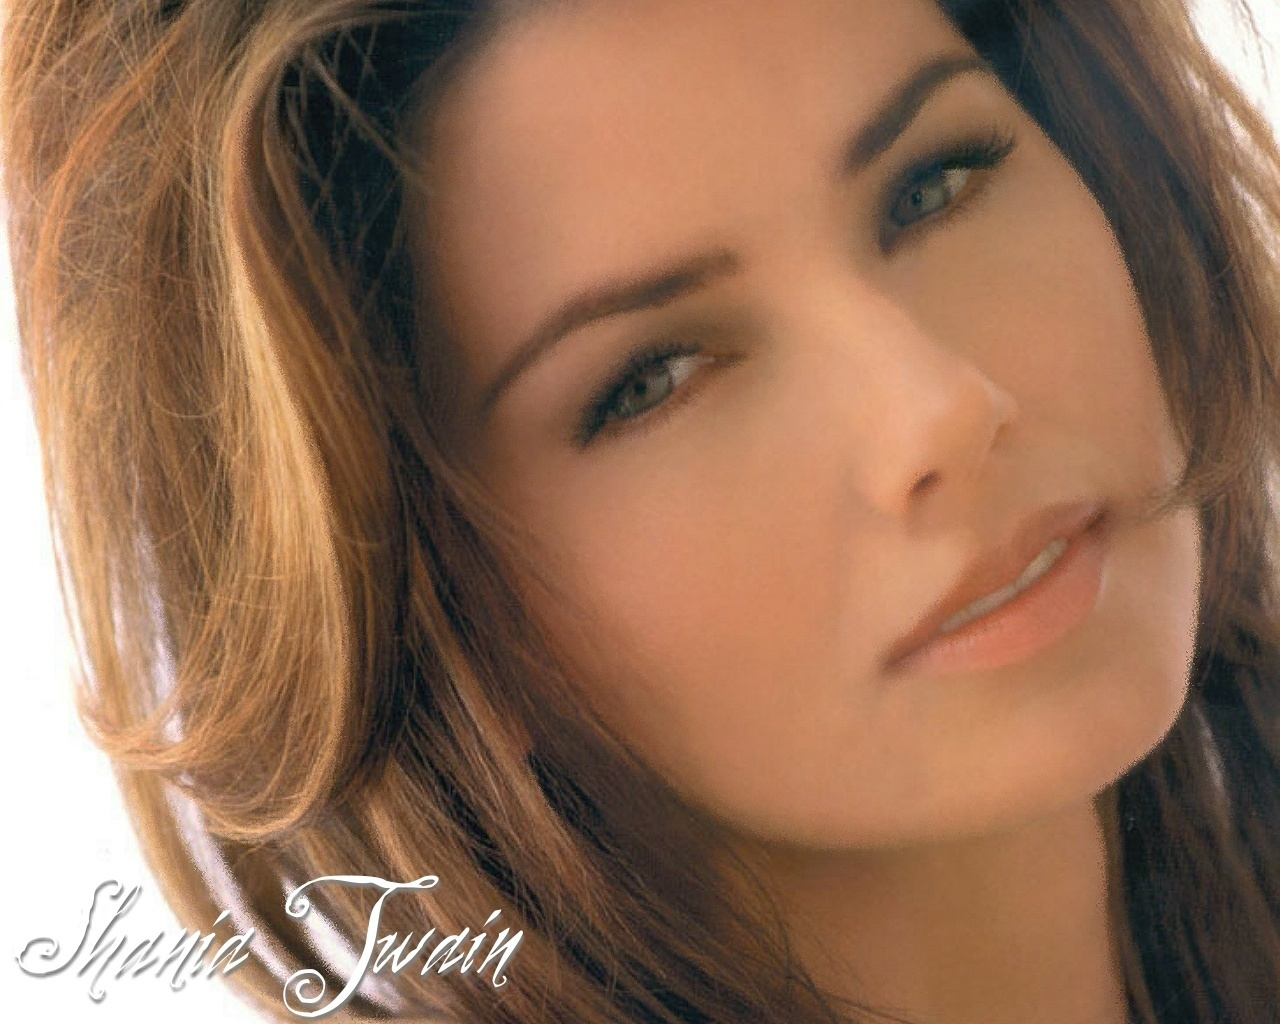 ... Shania Twain HD Wallpapers ...